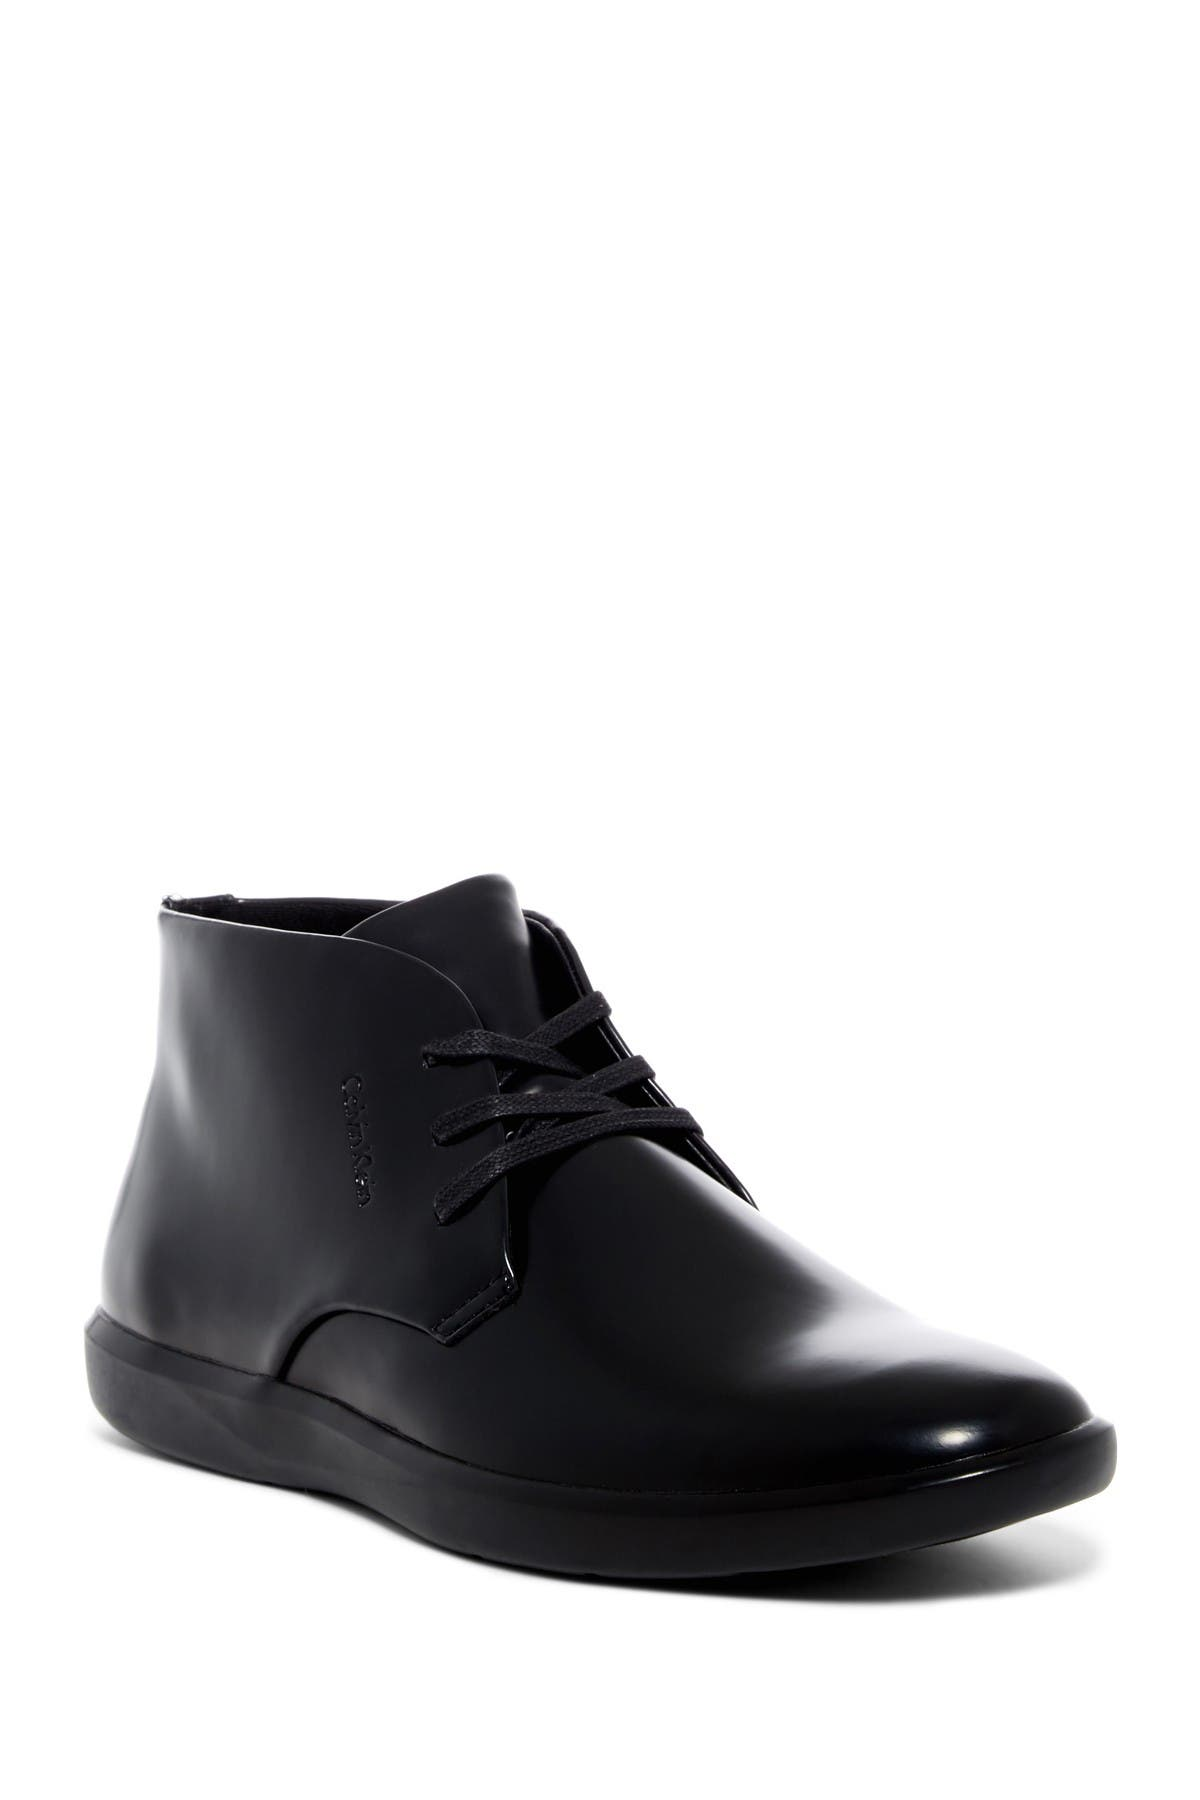 Image of Calvin Klein Marco Leather Chukka Boot